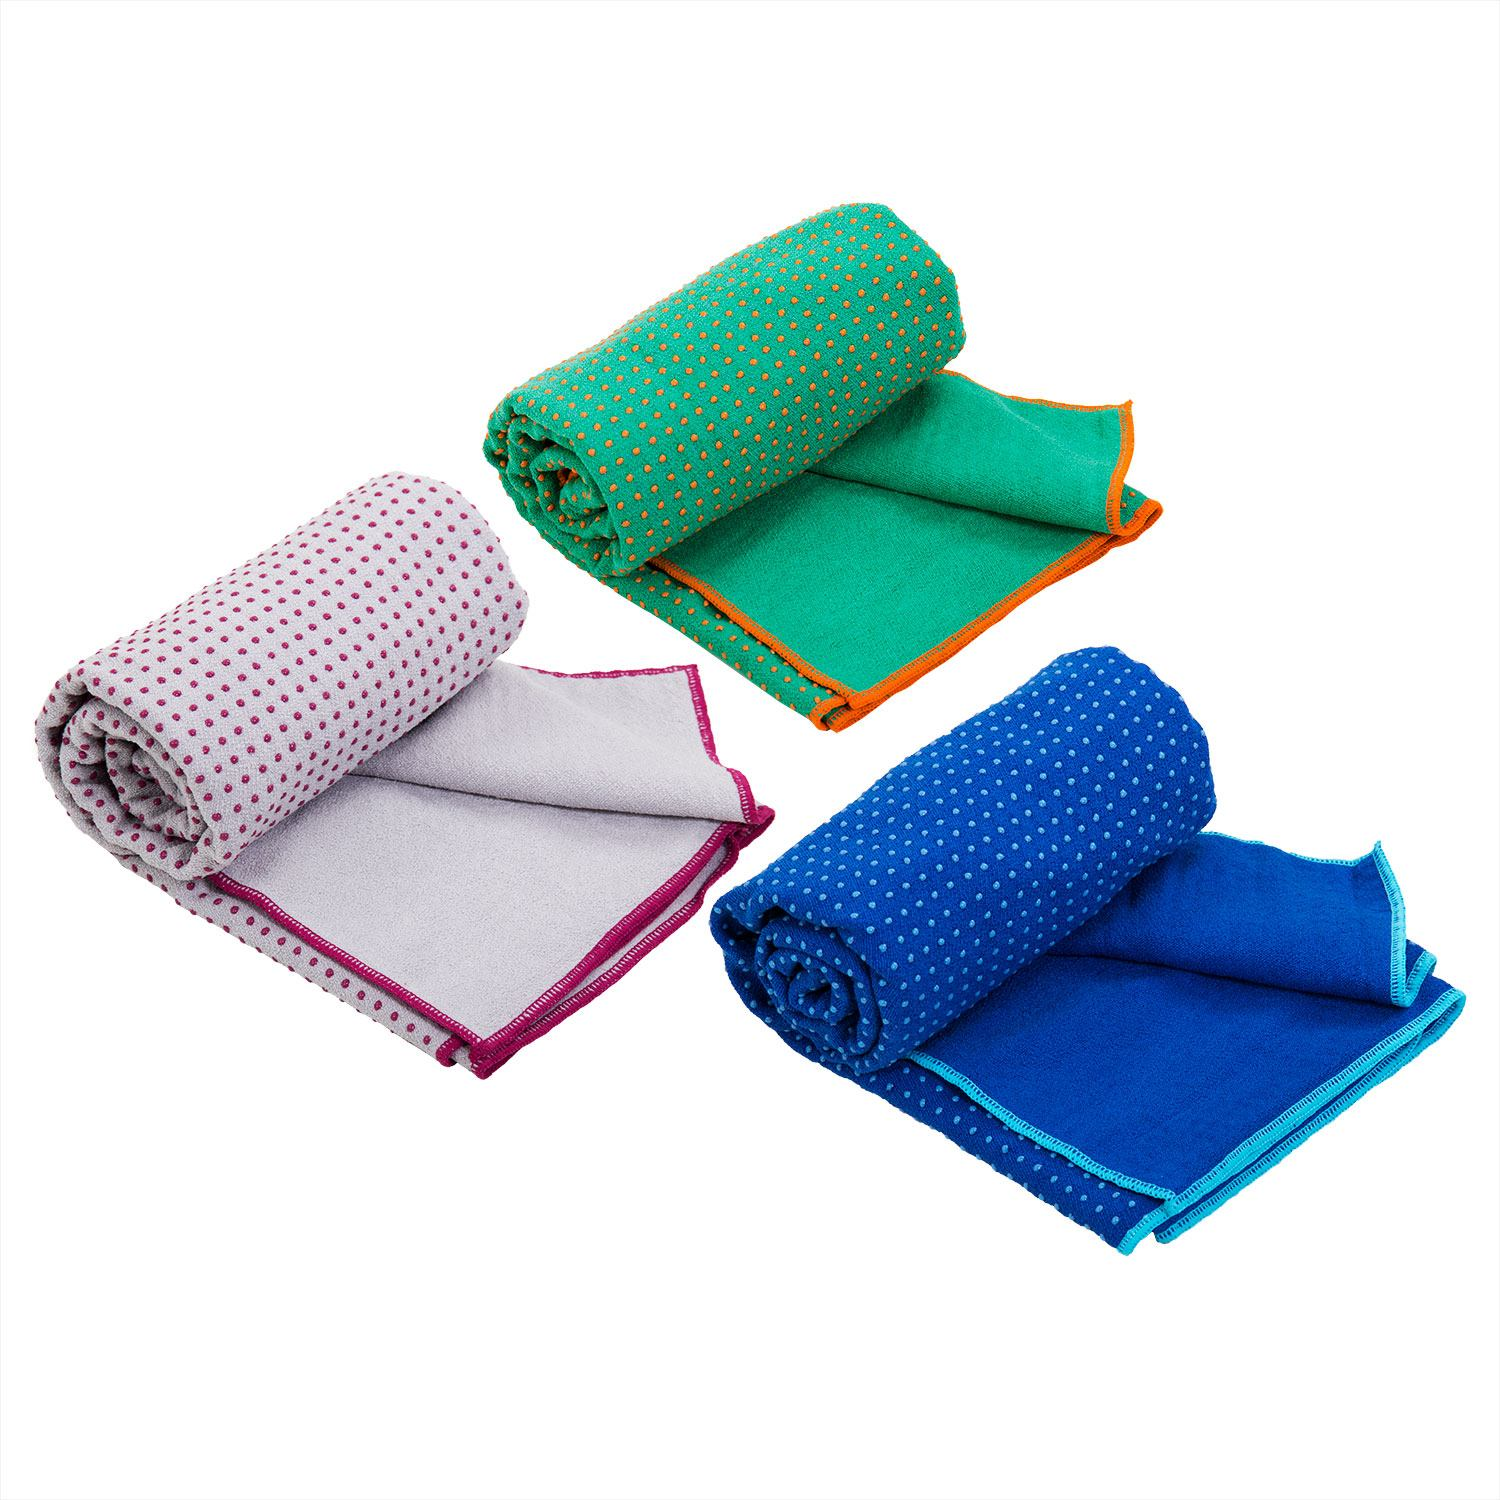 reflexology mat shiatsu pad pink pressure relaxation in purple red blue circulation green massage yellow plate mats foot from beauty item toe blood